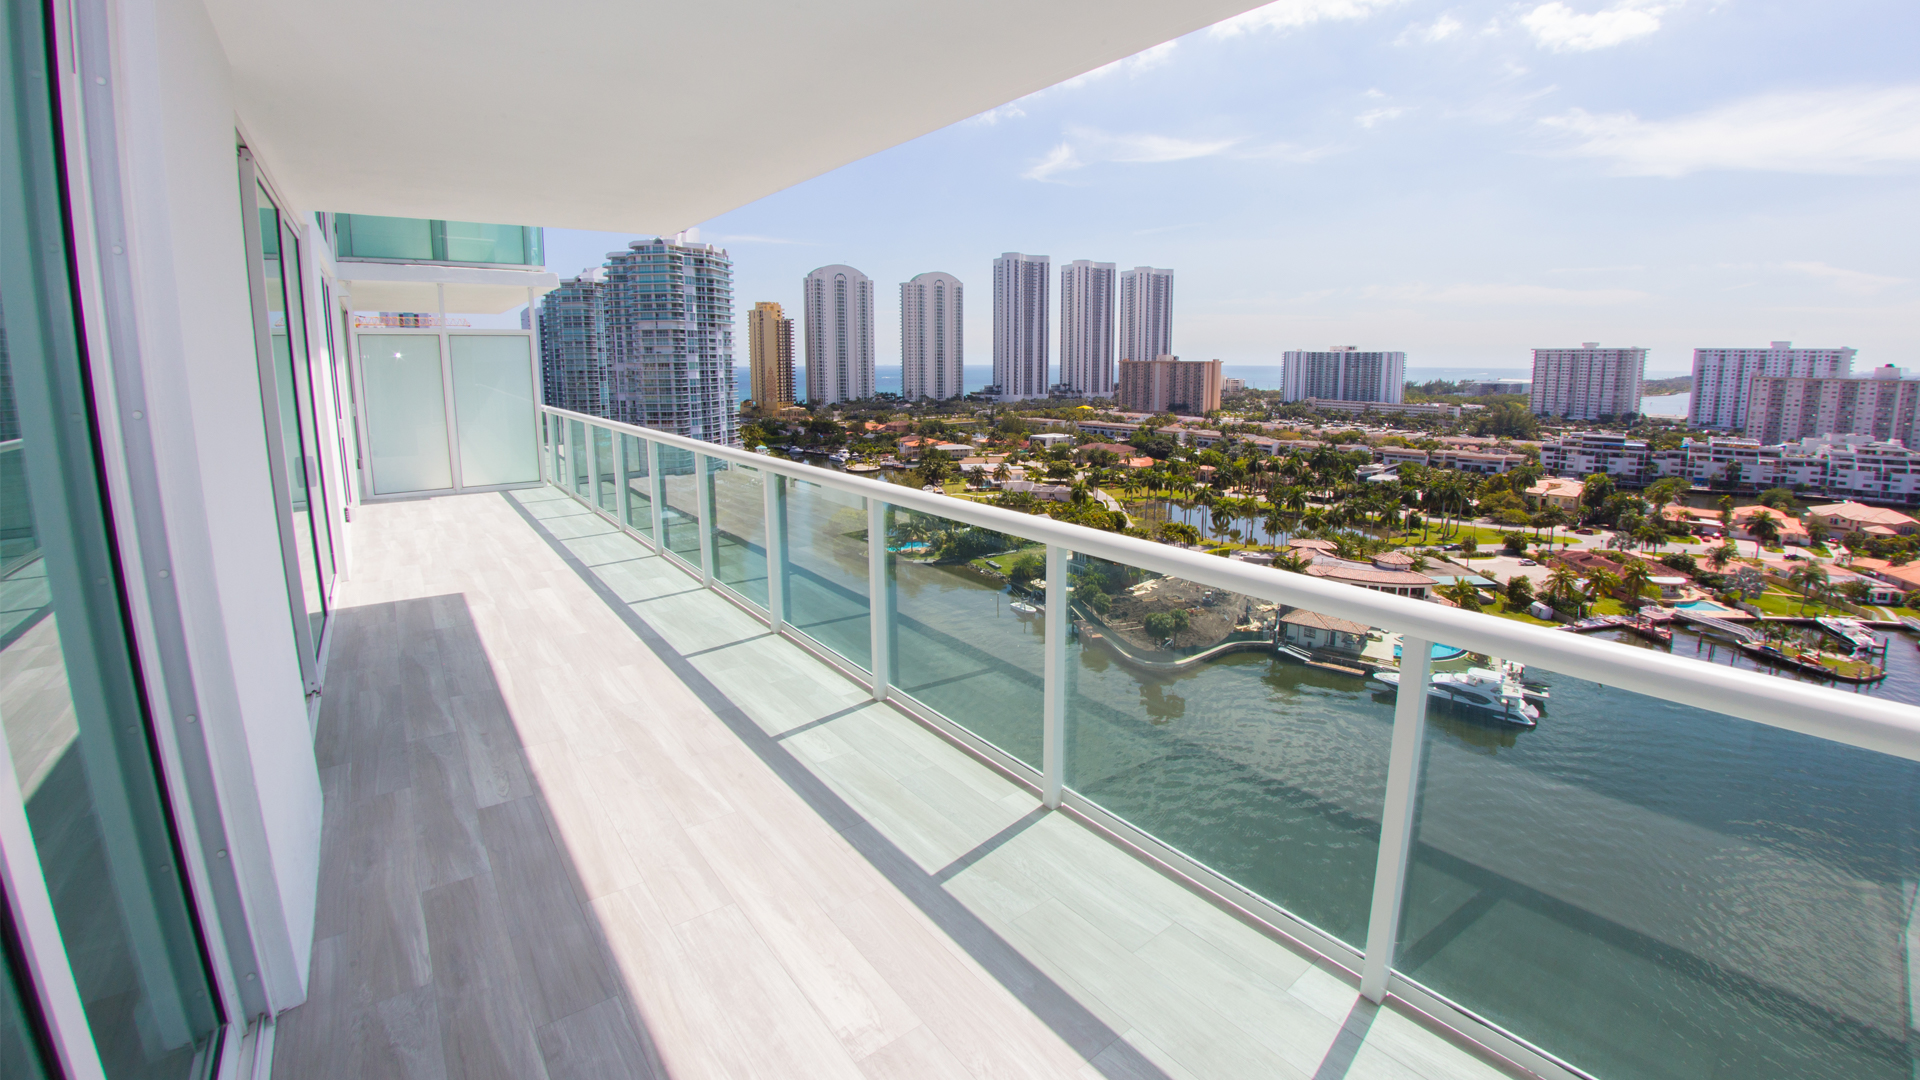 REAL ESTATE PHOTOSHOOT: 400 SUNNY ISLES UNIT 1721